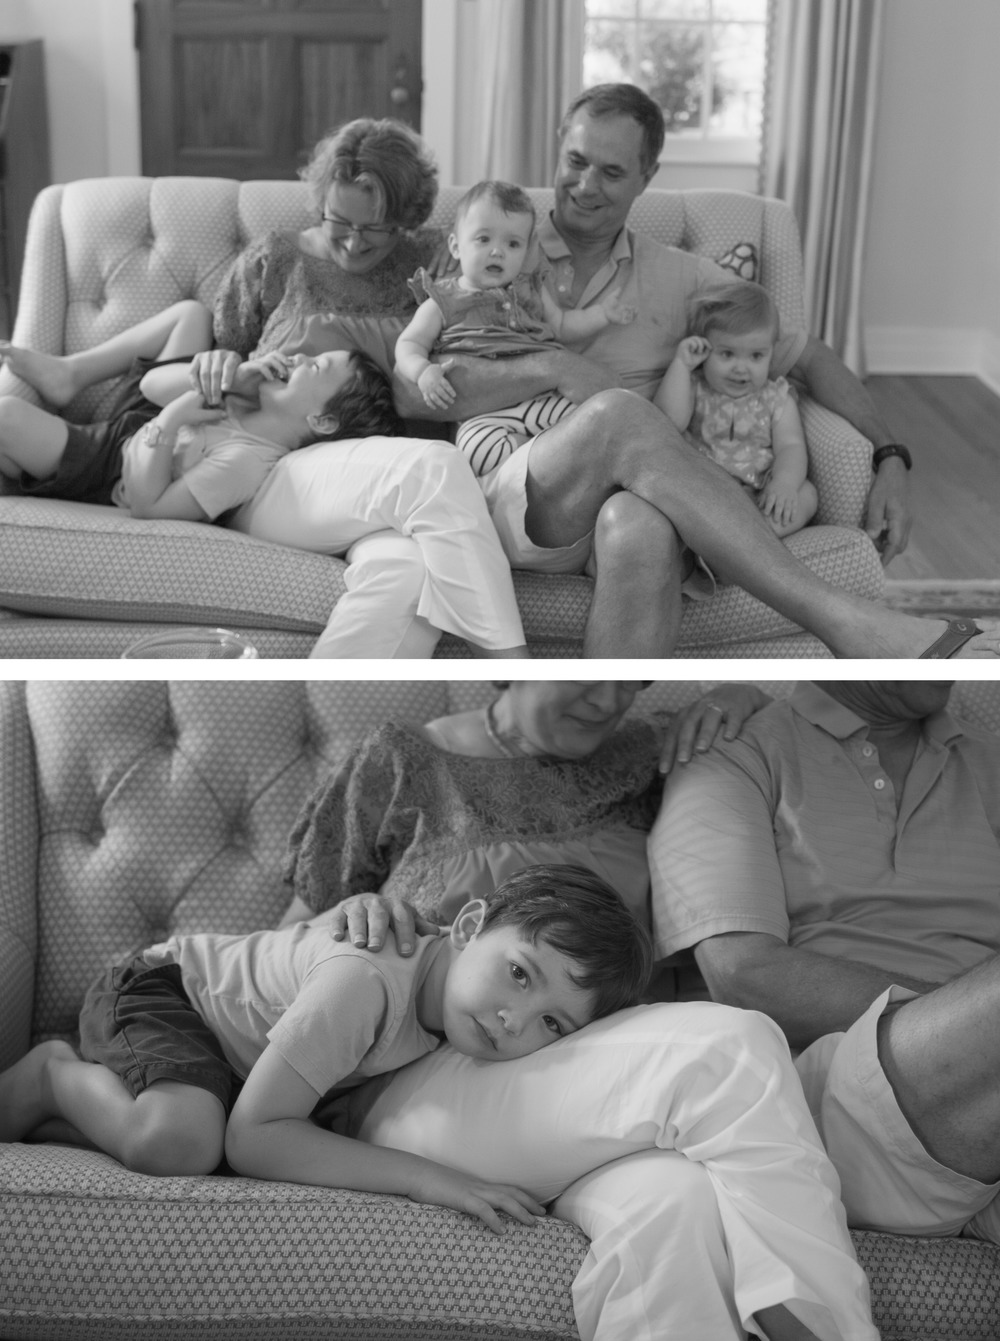 Pile on the grandparents!